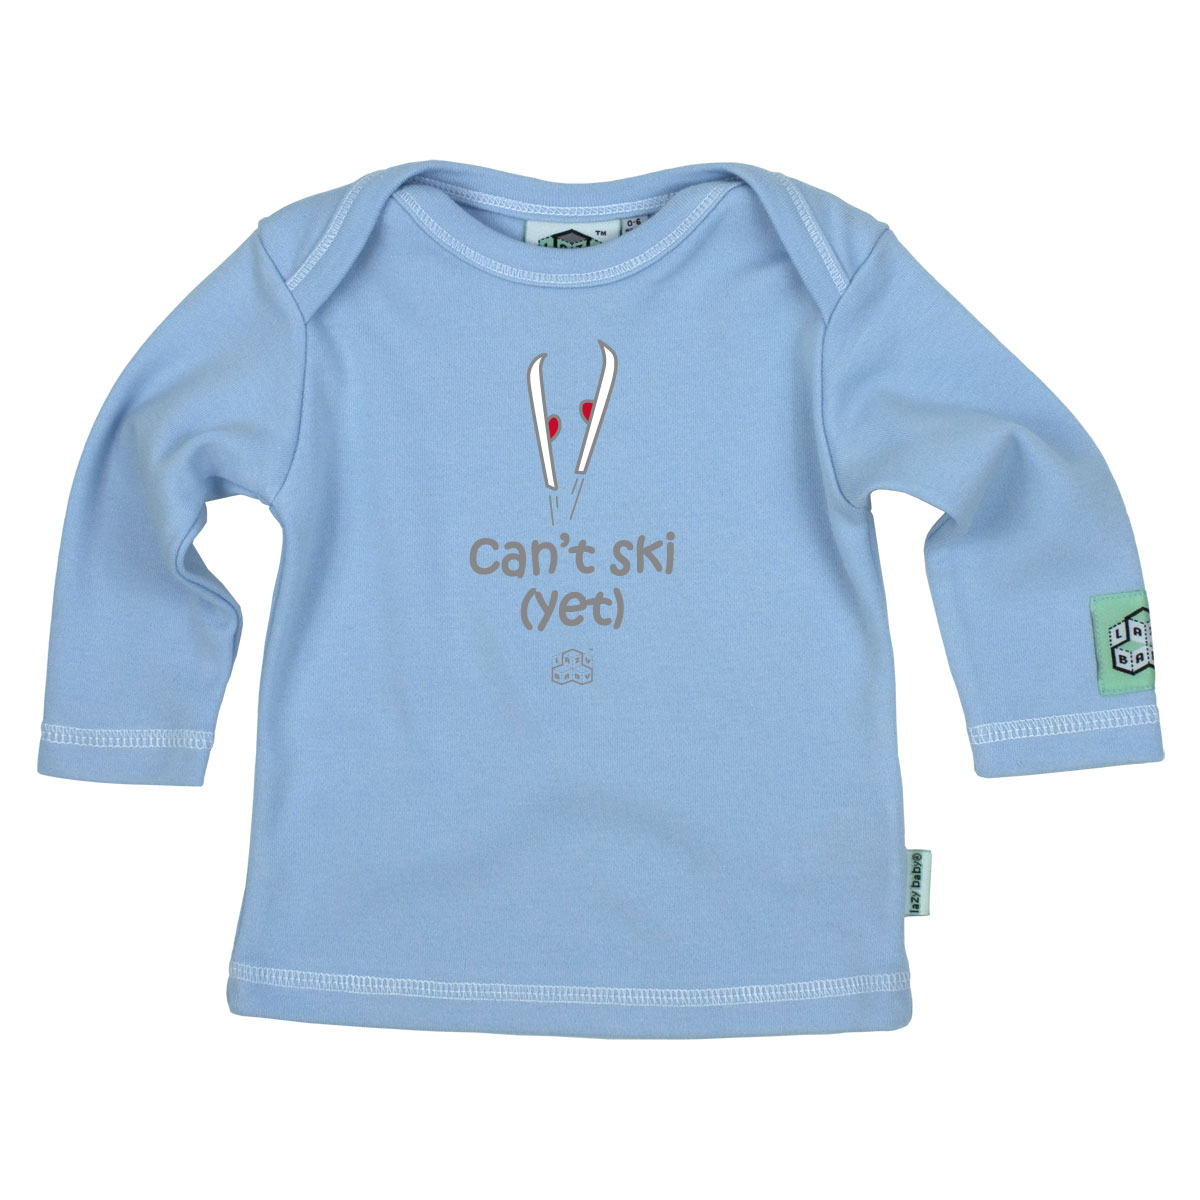 Lazy Baby Can't Ski (Yet) - Sky Blue